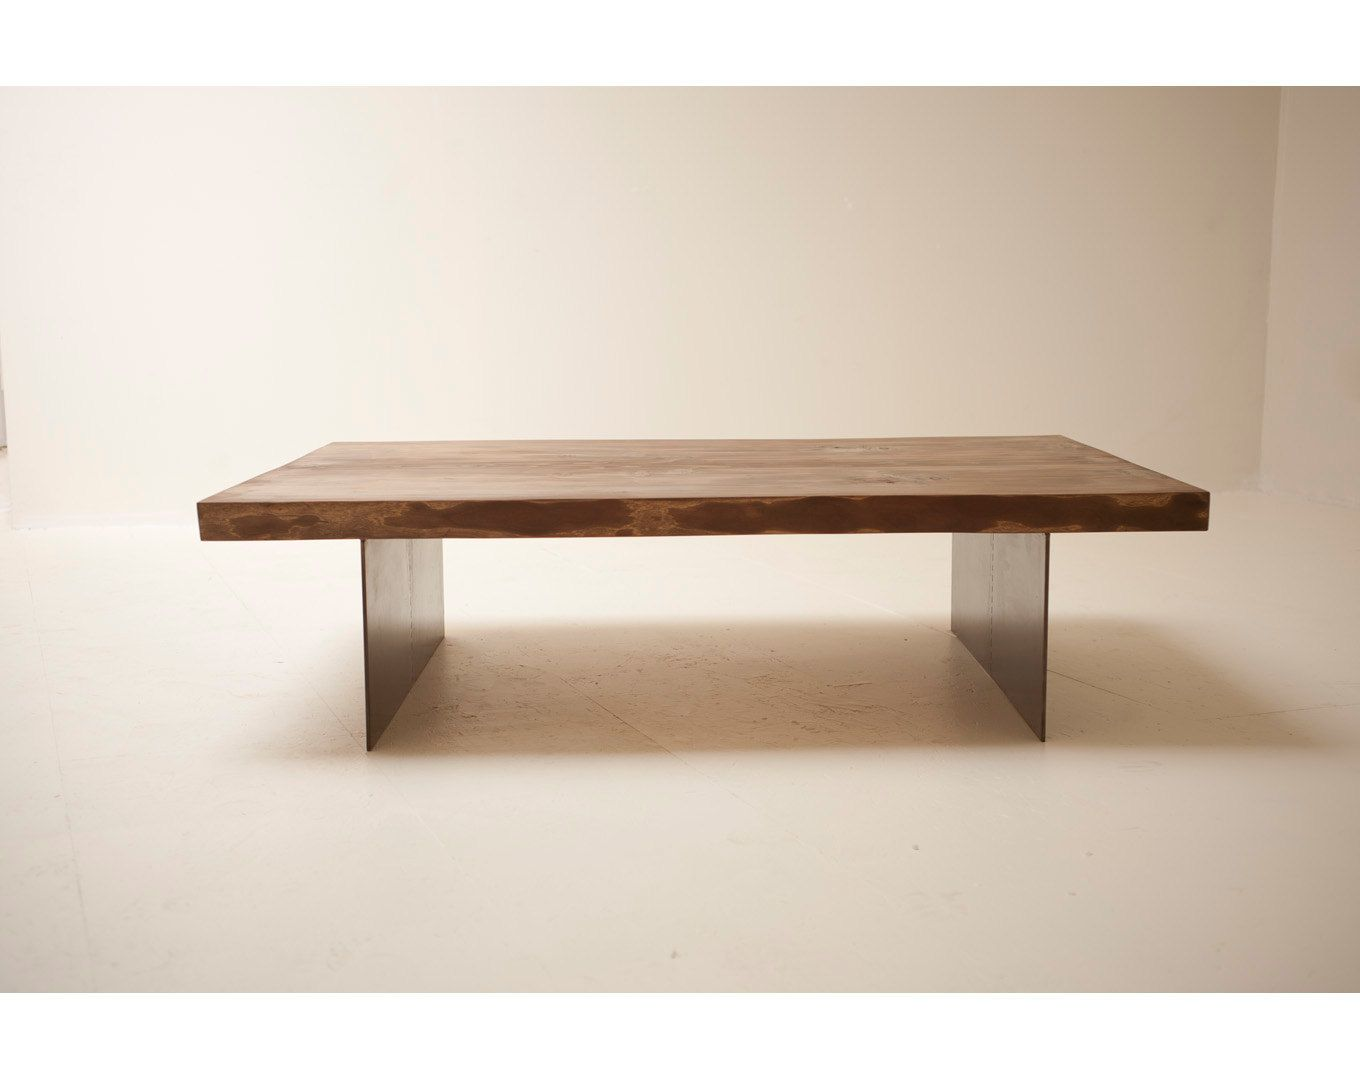 Coffee Table Handmade With Naturally Fallen Wood And Reclaimed Steel By Blake Avenue Coffee Table Coffee Table Wood Reclaimed Wood Coffee Table [ 1080 x 1360 Pixel ]